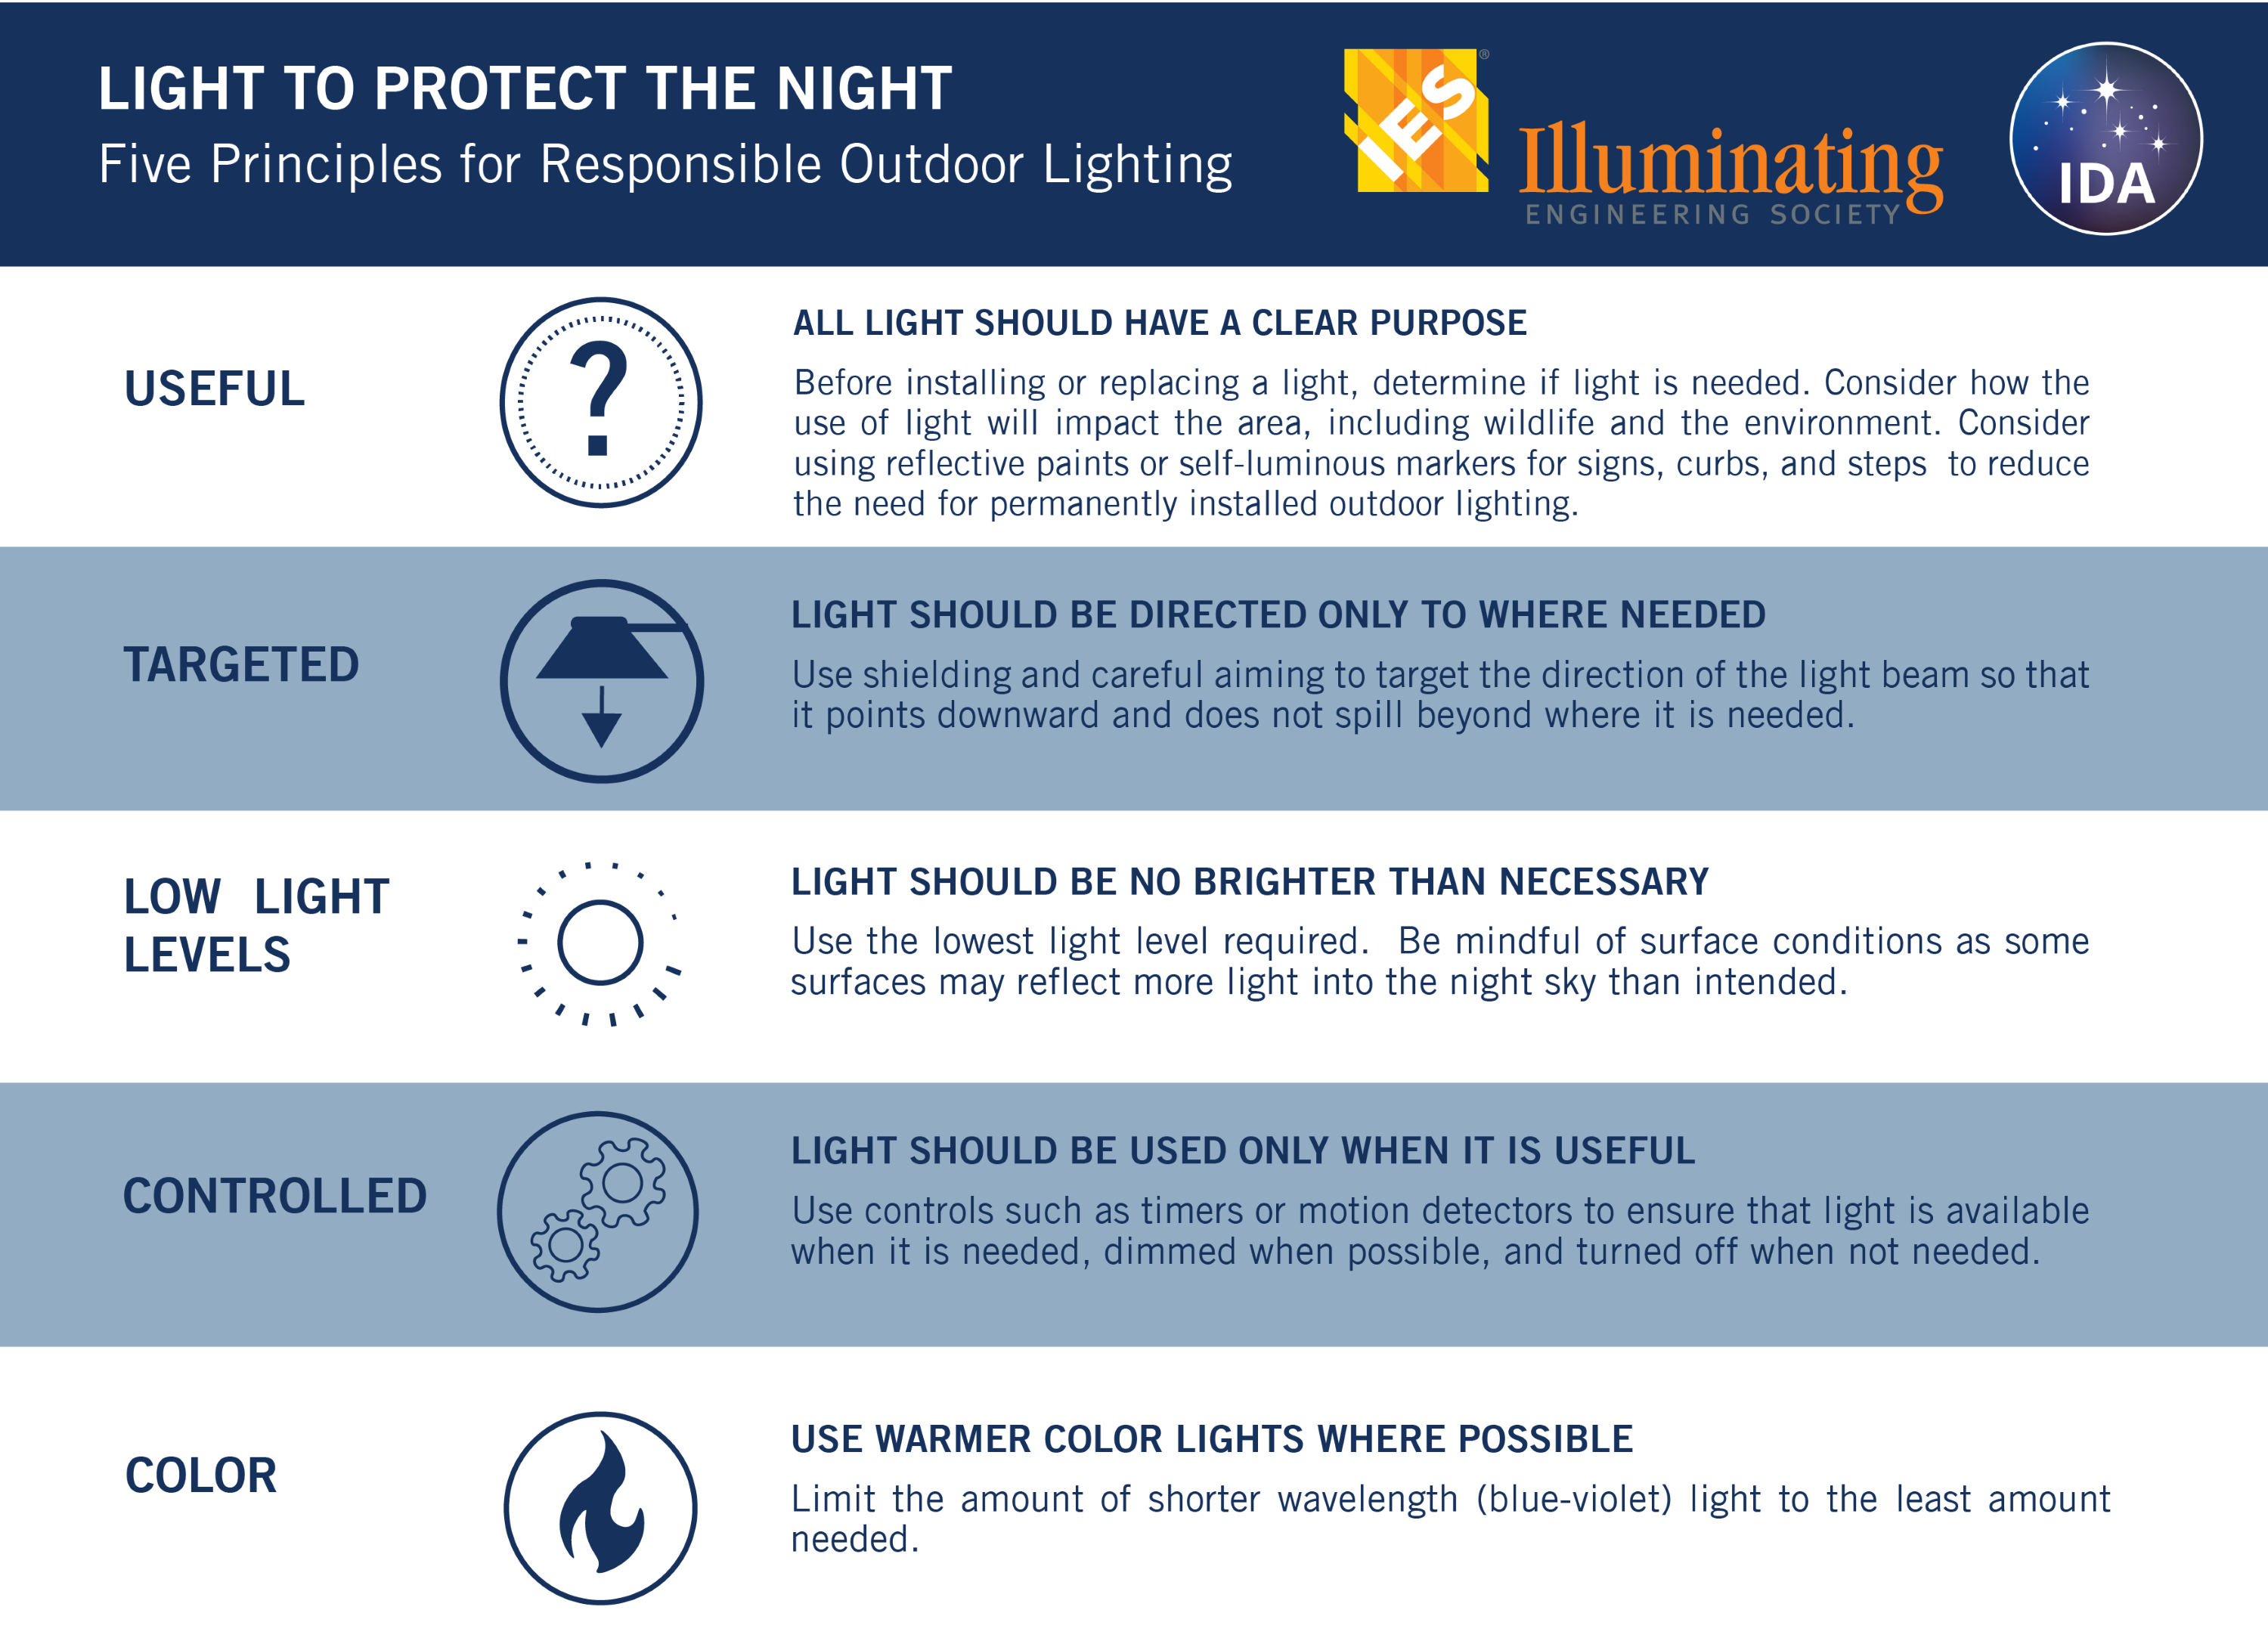 Dark Sky Friendly Home Lighting Program International Dark Sky Week 2020 Light Pollution Dark Skies Pollution